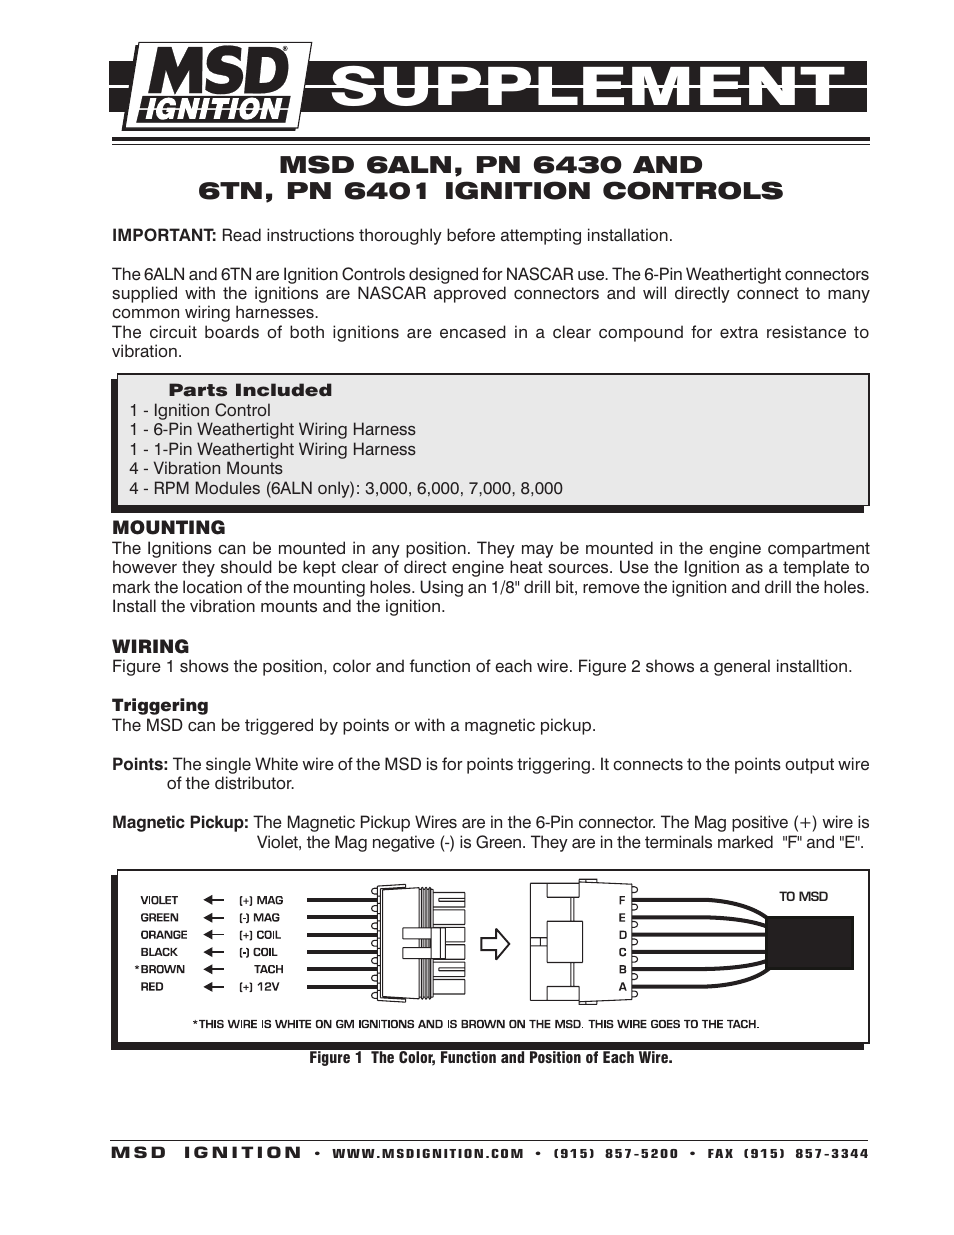 msd 6430 6aln ignition control supplement page1 tg66m3170c00 wiring diagram,m \u2022 indy500 co  at crackthecode.co